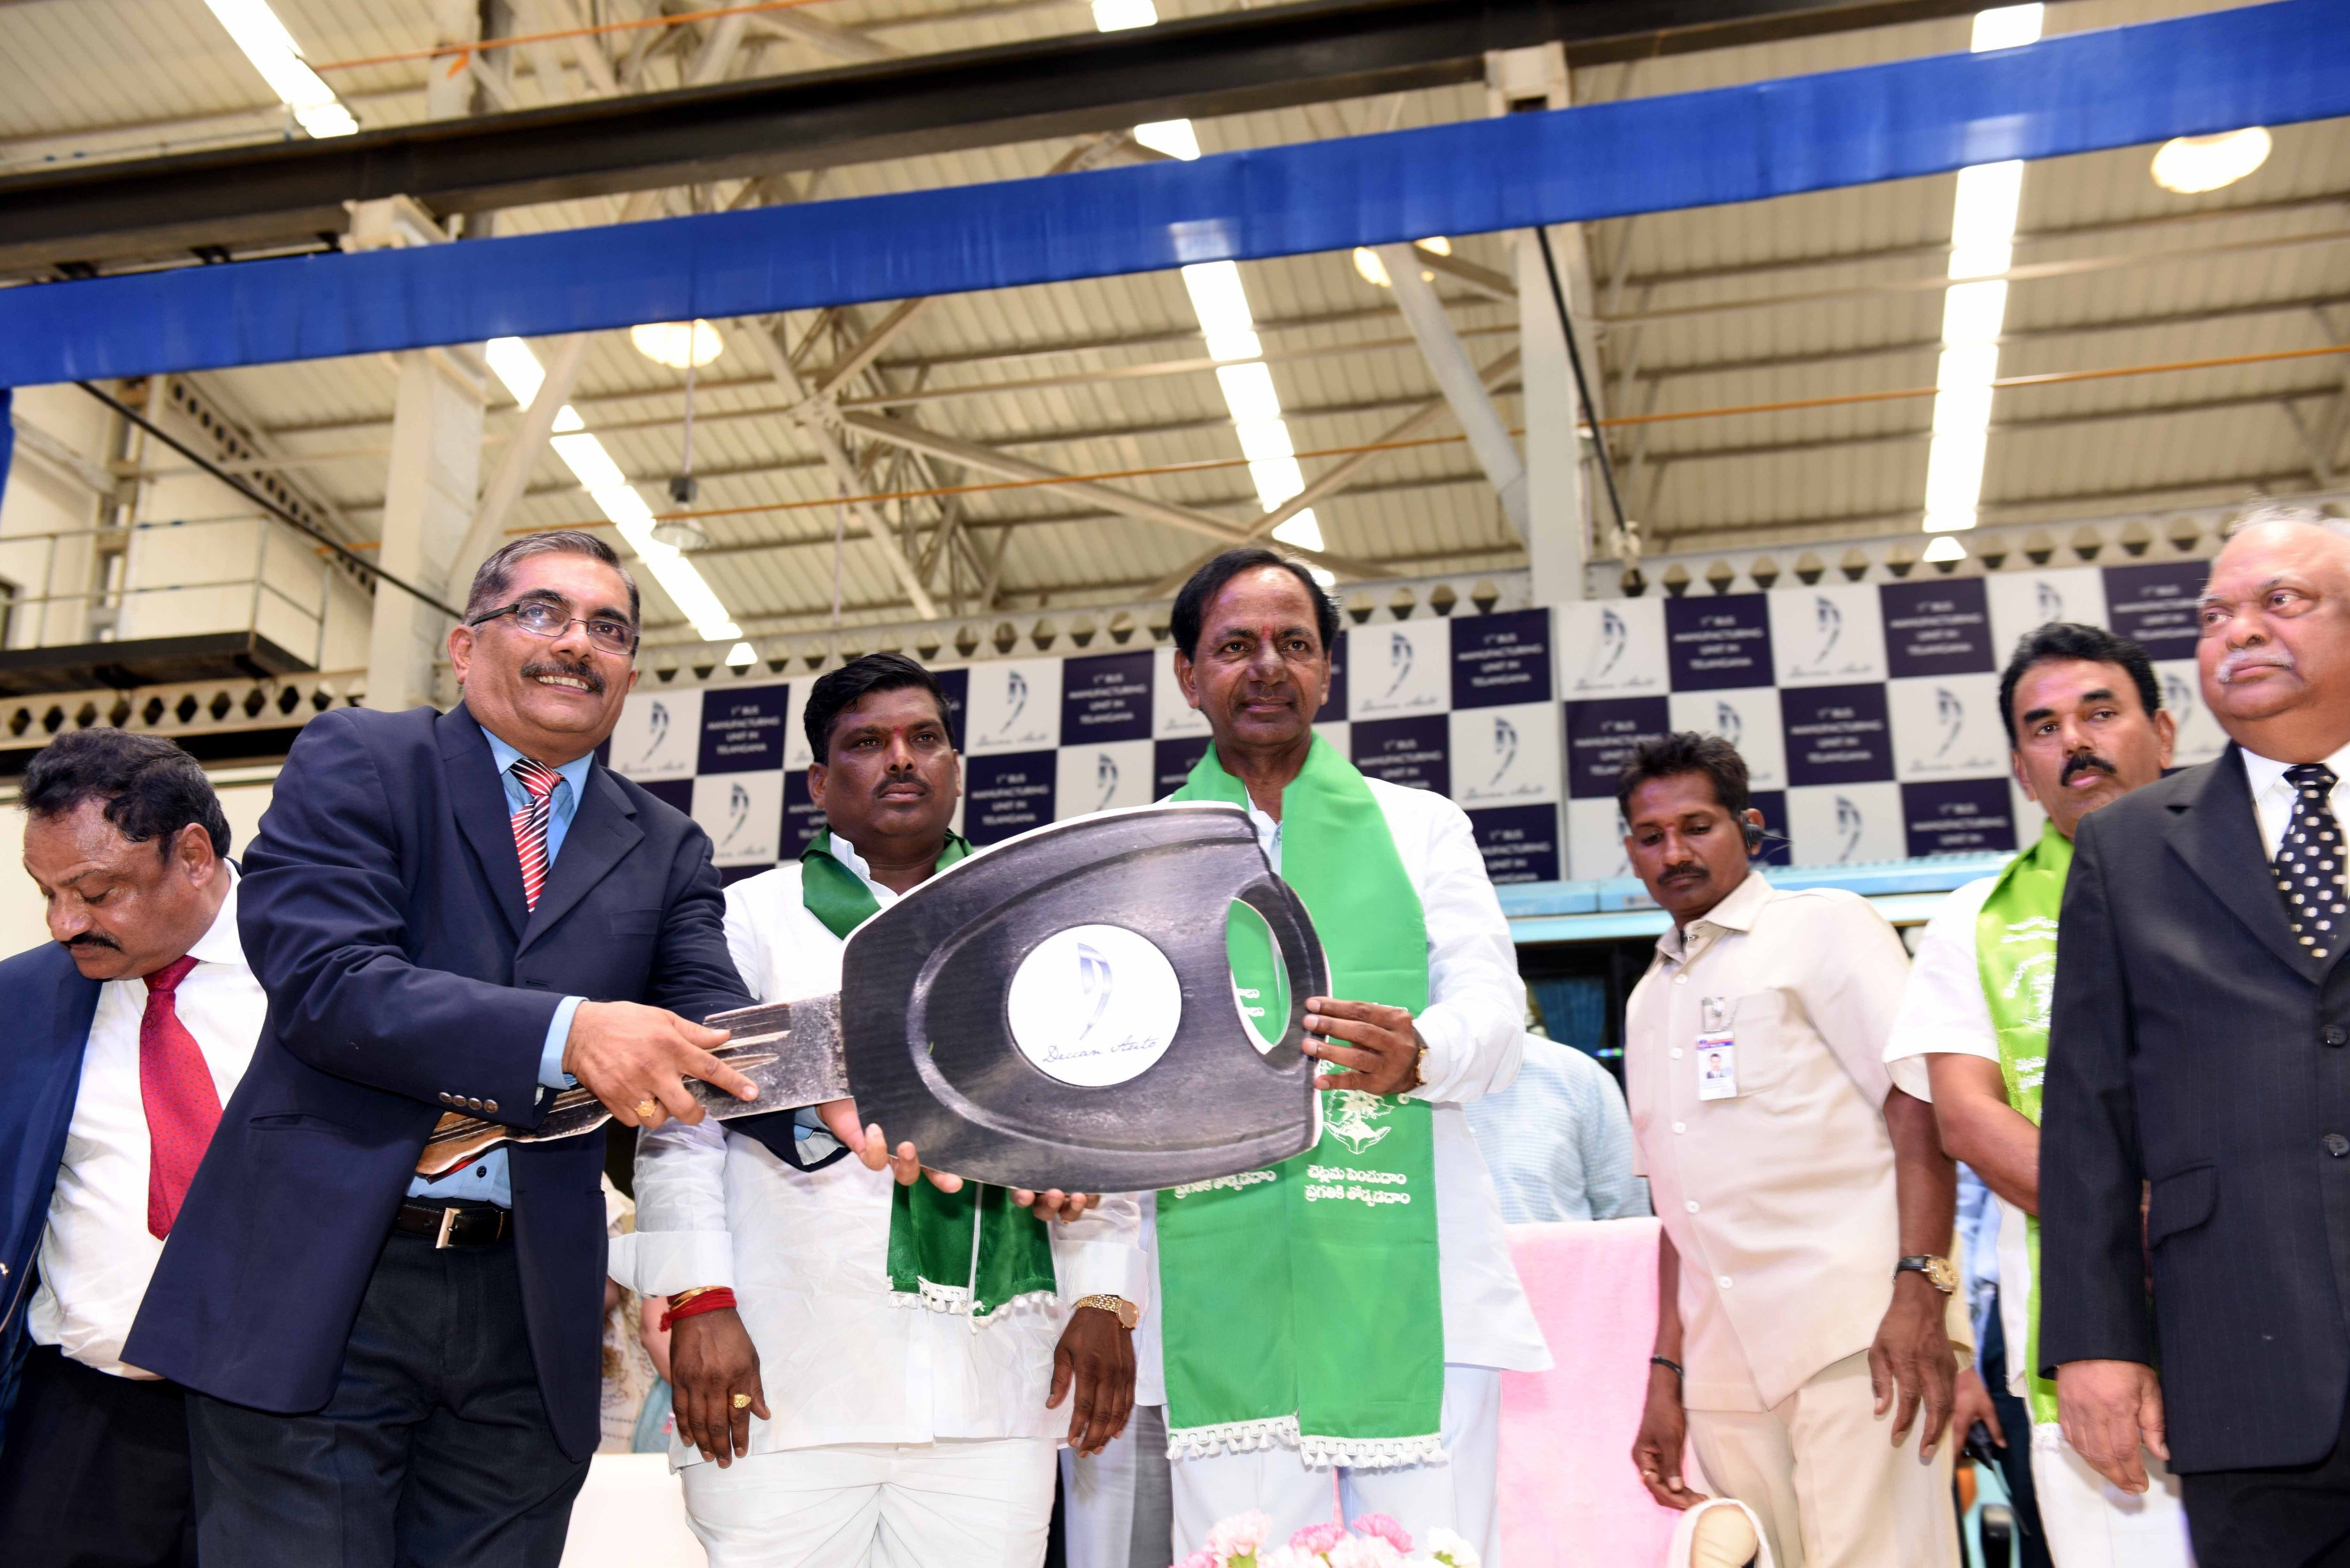 TS CHIEF MINISTER K.CHANDRASHEKHAR RAO INAUGURATED DECCAN AUTO Ltd, KODAKANCHI, AT JINNARAM ON 11-7-2015.